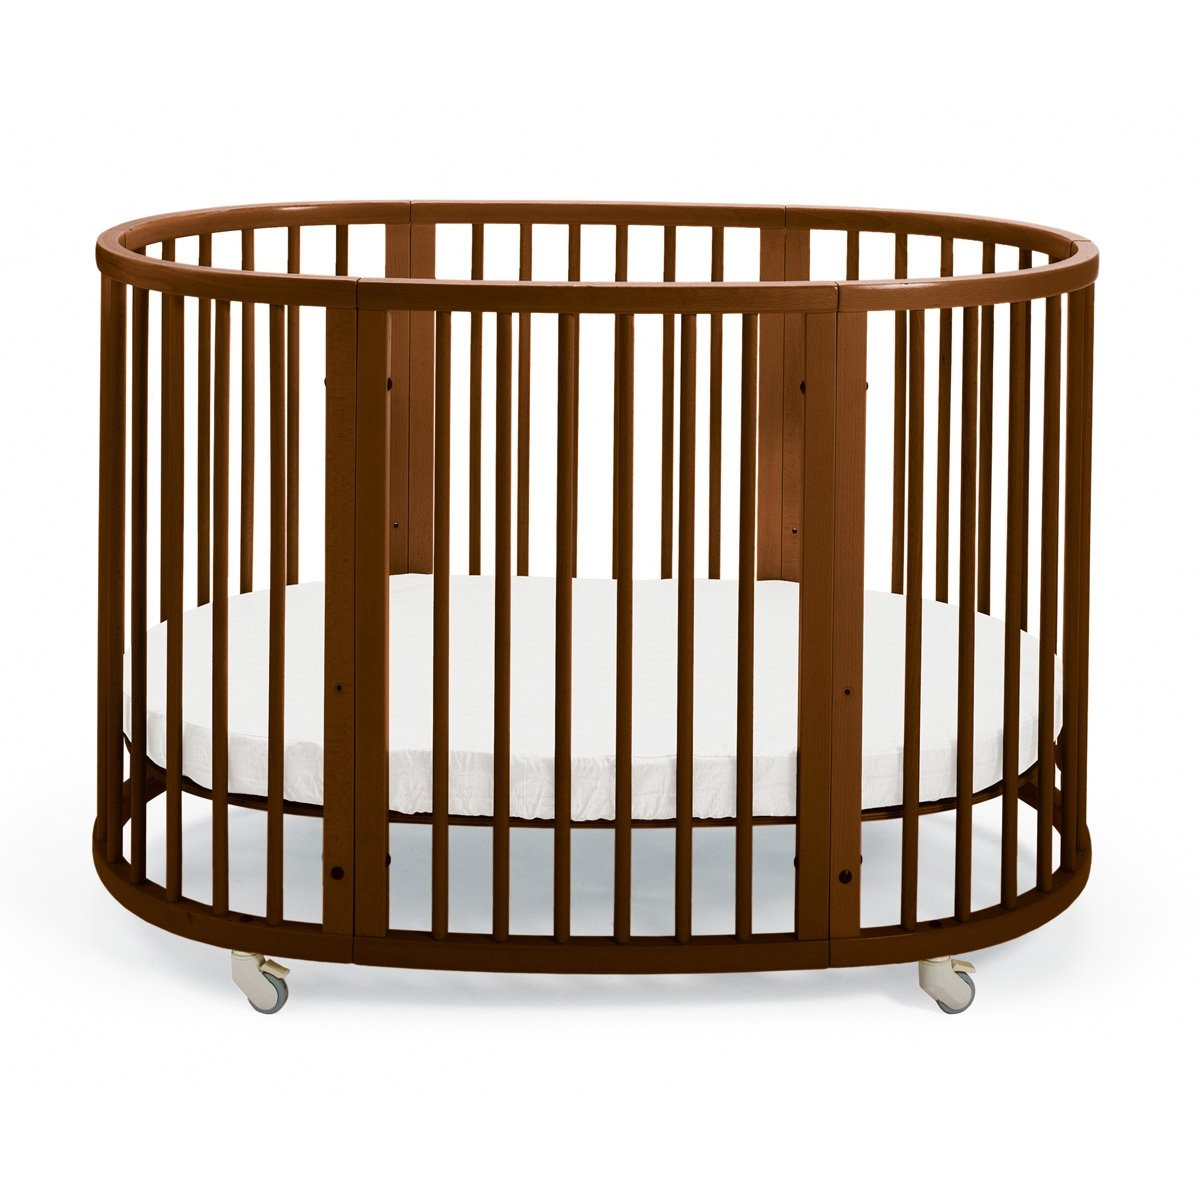 Crib for babies online india - Crib For Babies Online India 34